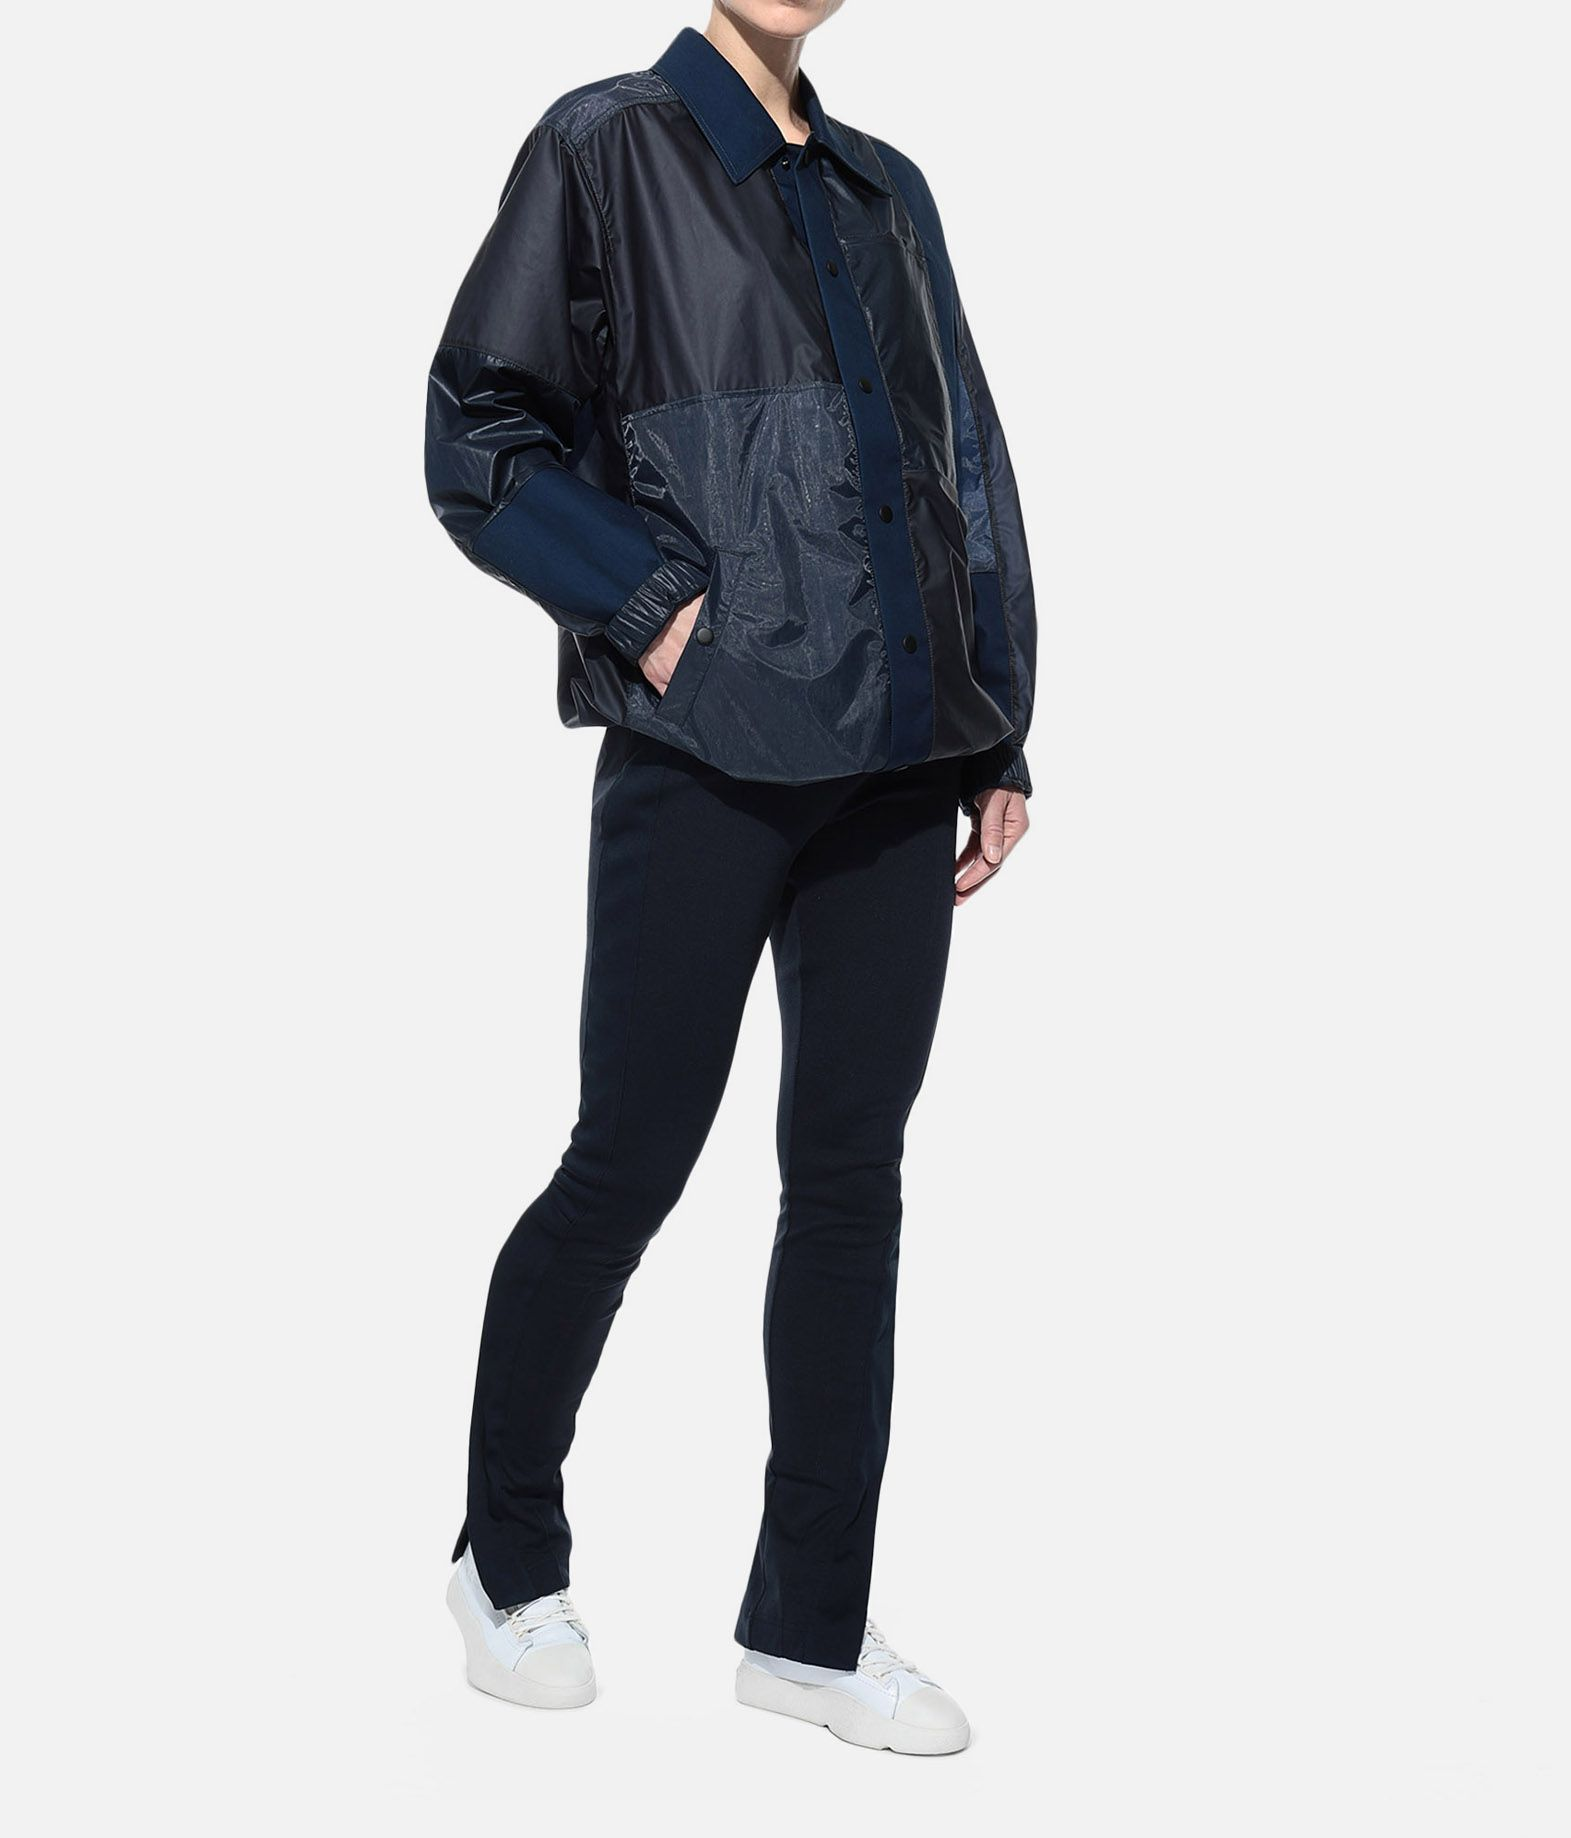 Y-3 Y-3 Patchwork Coach Jacket  Jacket Woman a